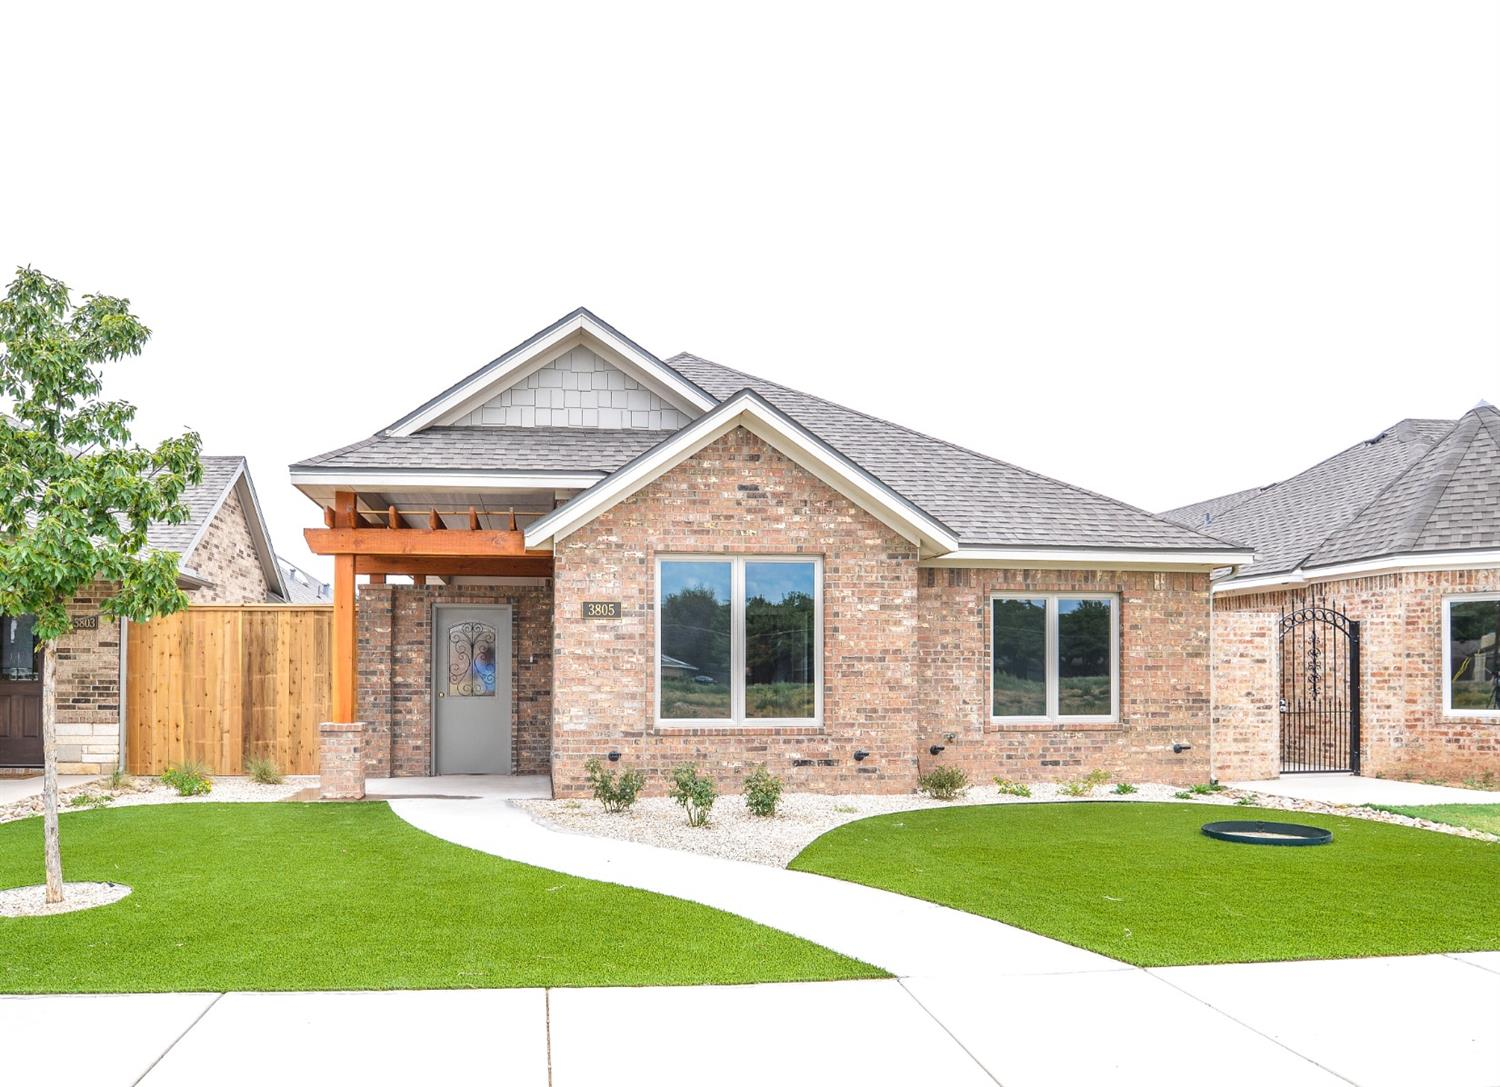 Fabulous new construction garden home built by Ron Reeves.  This home is located in Memphis Gardens, a new development which is surrounded by the mature and gorgeous neighborhood of Melonie Park. The open concept floor plan boasts beautiful vinyl plank flooring which runs throughout the entry, living room and kitchen. The kitchen has beautiful custom cabinetry, stainless steel appliances, an over-sized island and a large pantry. Large windows overlooking the patio area allow natural light to pour into the living, dining and kitchen area. The isolated master suite has a large walk in shower, double vanities, separate soaking tub and a large walk-in closet with loads of storage and built ins. This home has a fabulous covered patio, maintenance free landscaping and an amazing artificial turf front yard! The secure patio door has a ring doorbell which allows the owner to see who is at the door and allow access. Schedule your private showing of this beautiful Ron Reeves home today!